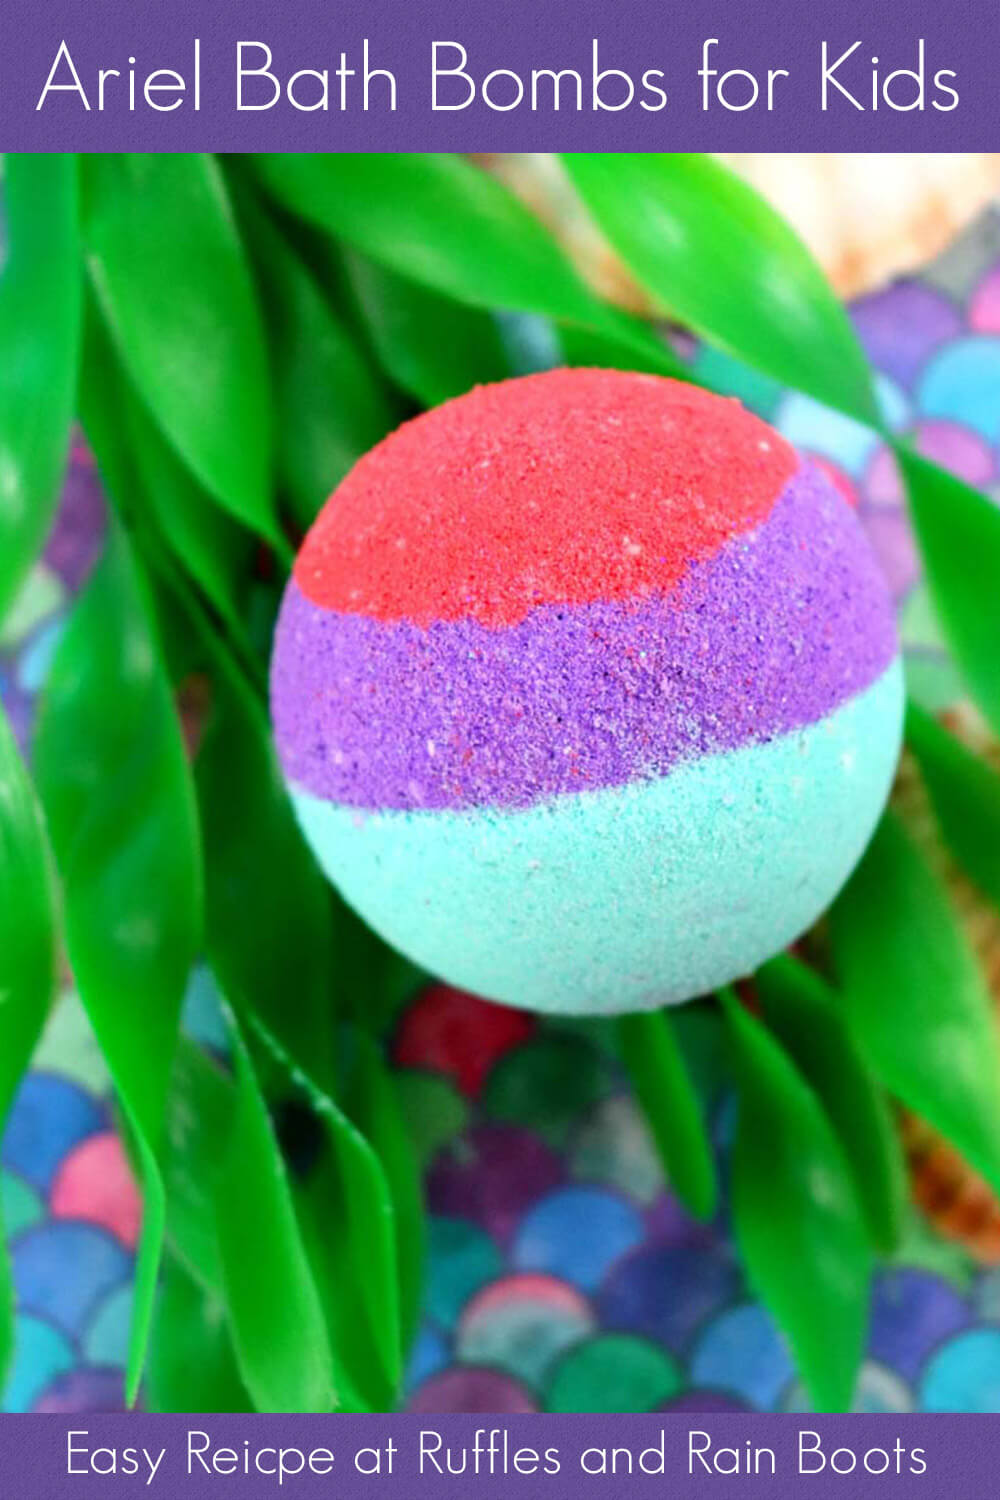 single red purple and teal bath bombs for kids ariel the little mermaid on fake sea grass with a shell sitting on a brightly colored scale-design table